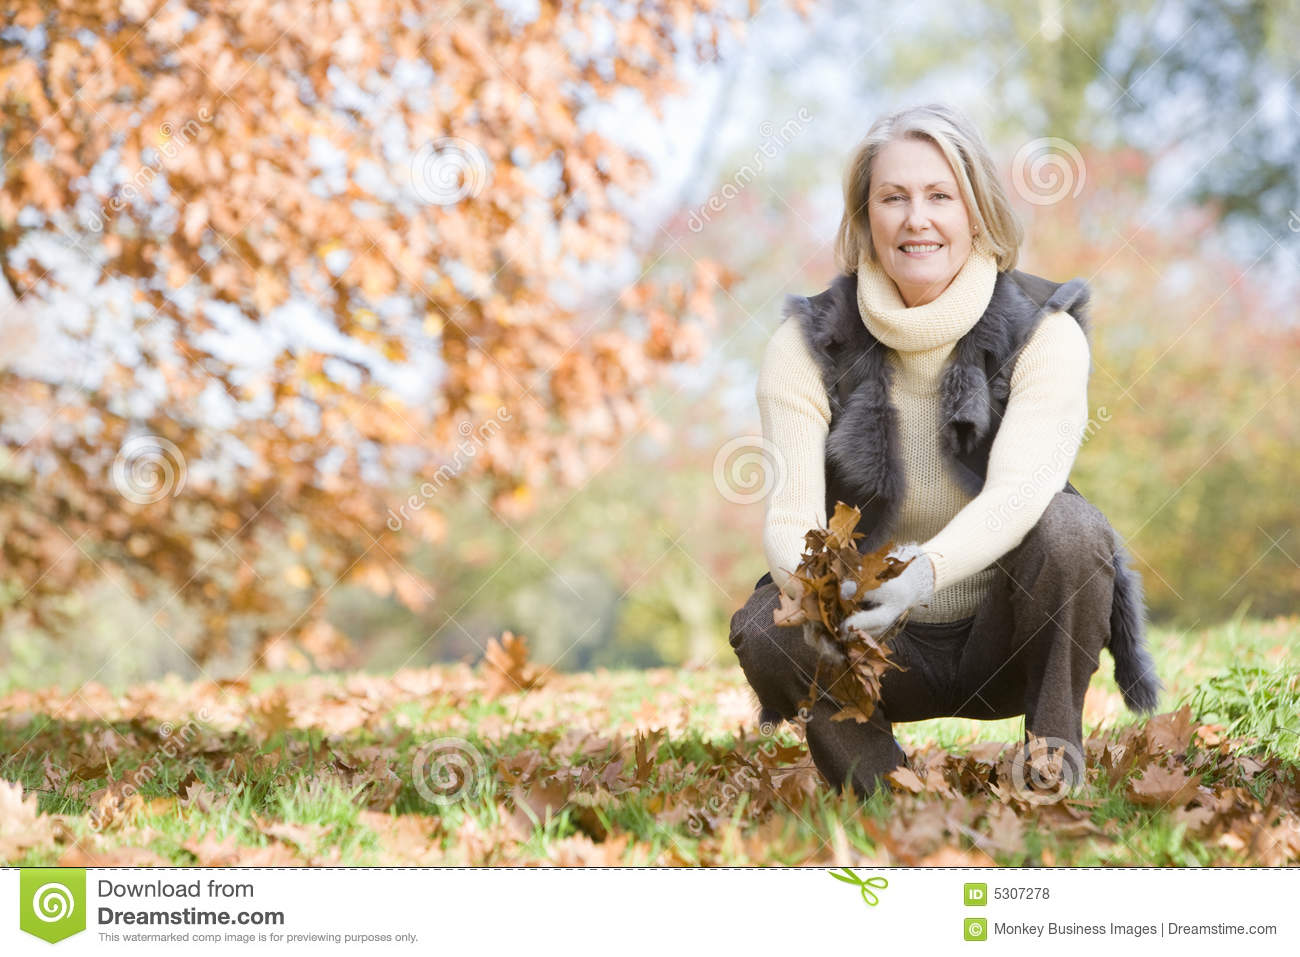 Senior woman collecting leaves on walk